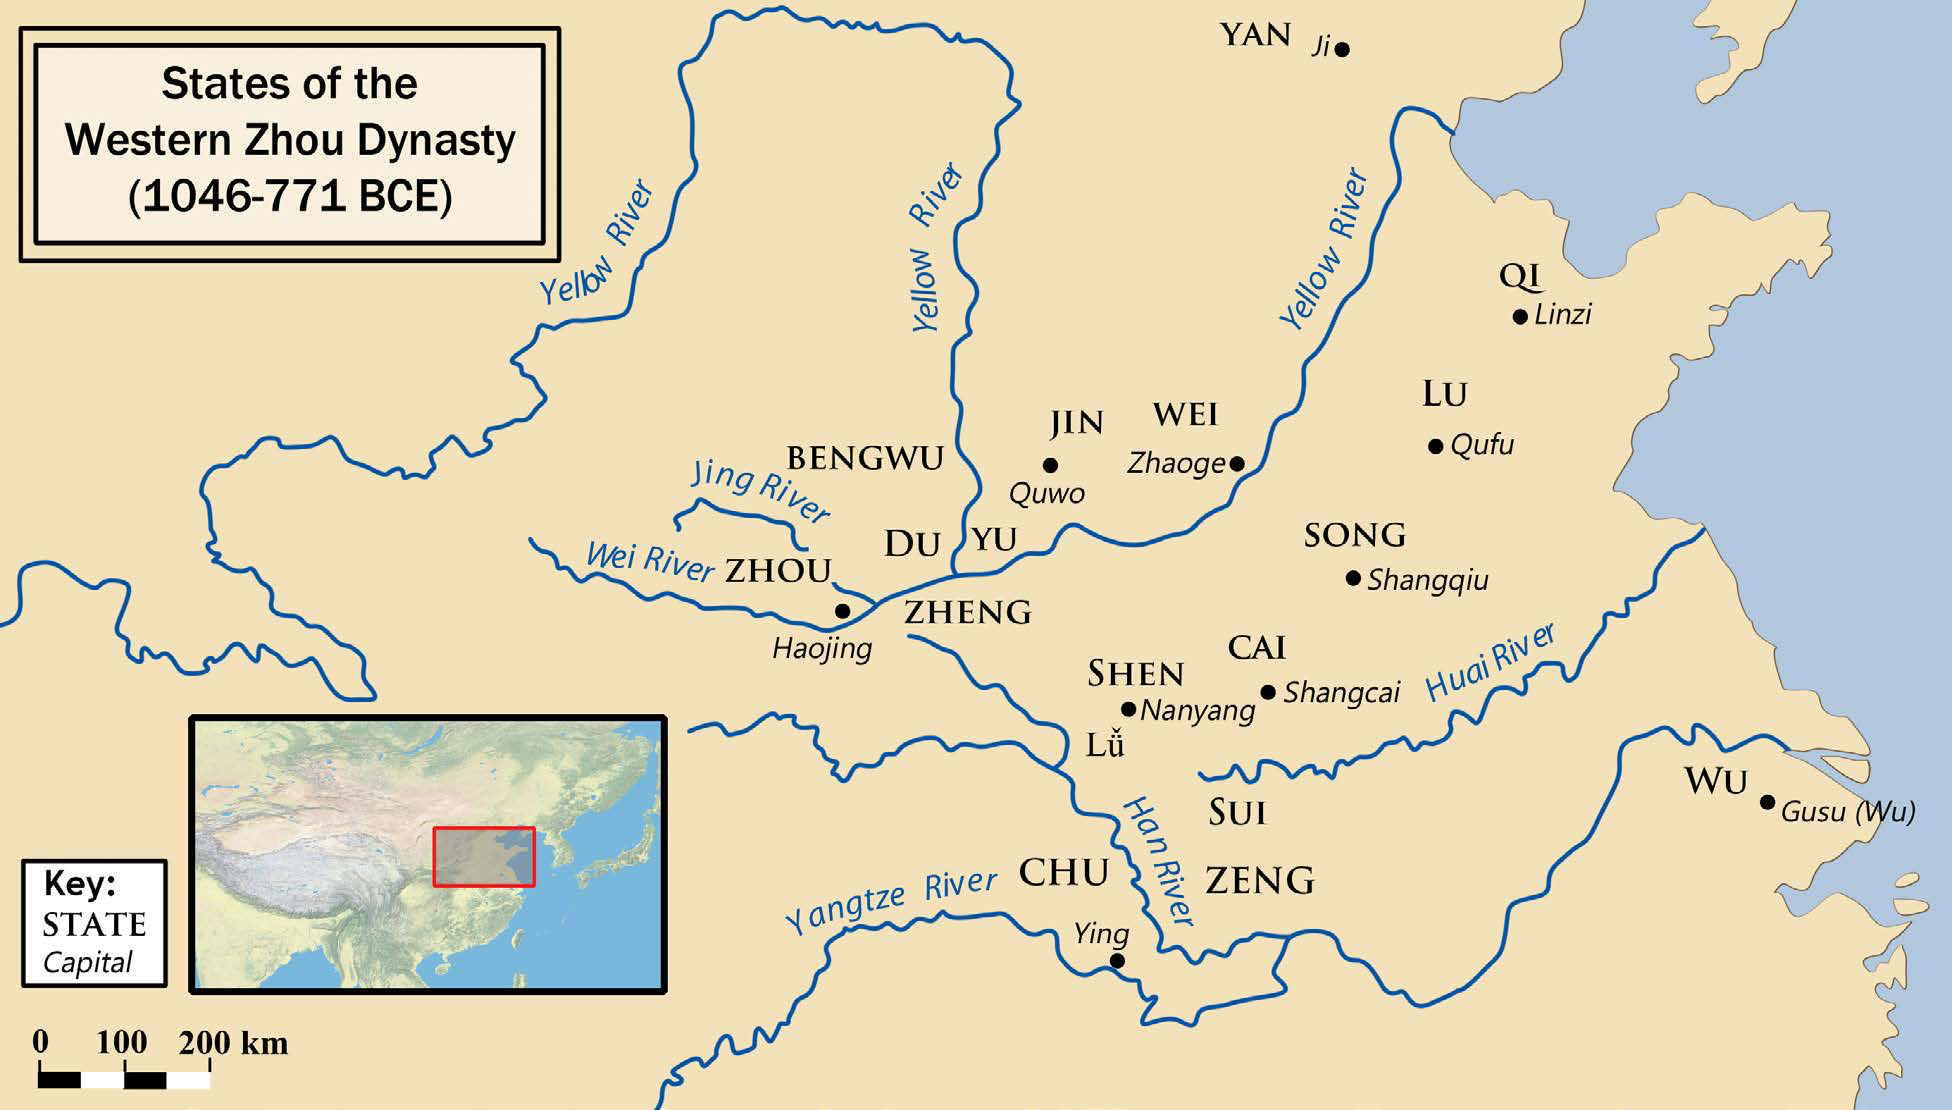 "The Western Zhou Dynasty | The capital was located along the Wei River valley, at Haojing. The names of states granted by early Zhou kings to kinsmen and allies, along with their capitals, are indicated. | Author: User ""Philg88"" 